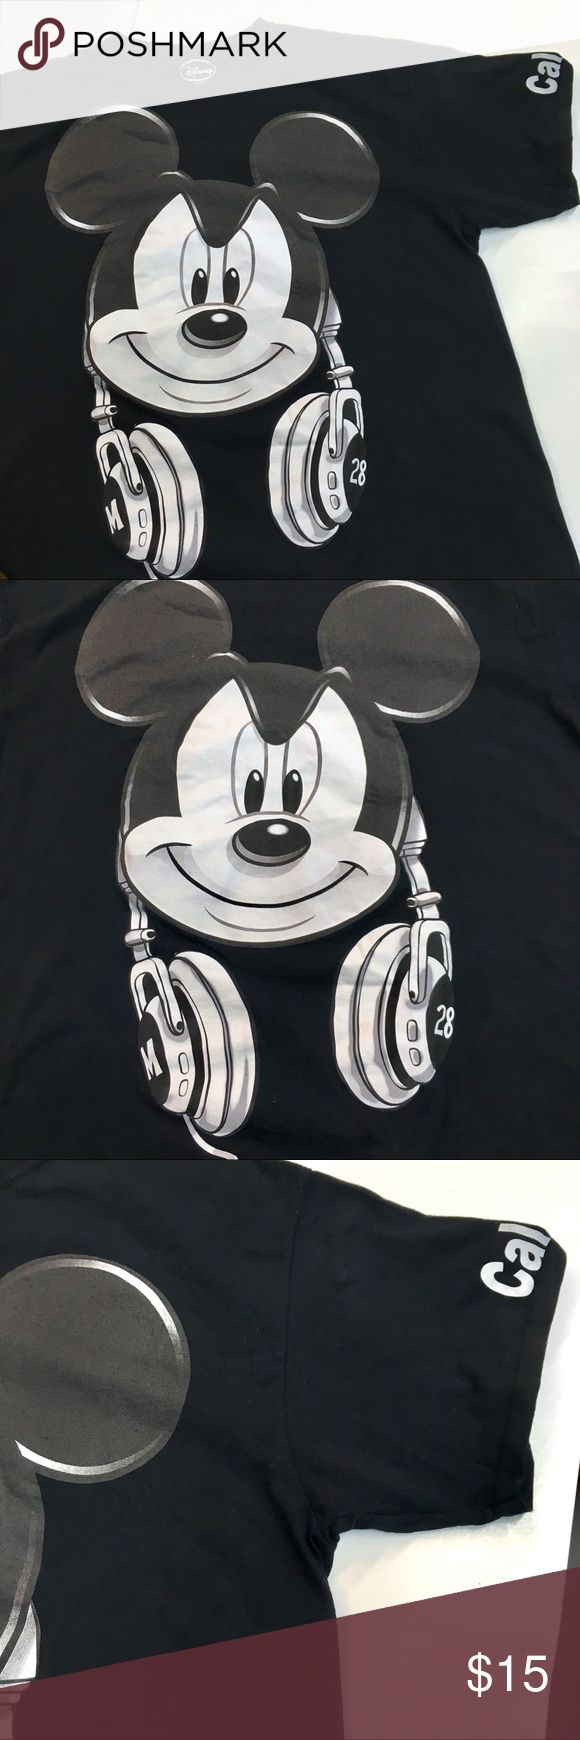 """Mickey Mouse '28 Headphones XL Shirt Disney Up for sale is a new without tags graphic t shirt by Disney. Size XL. Width is 23.5"""" across and length is 28"""". 100% cotton. Awesome shirt. Disney Shirts Tees - Short Sleeve"""